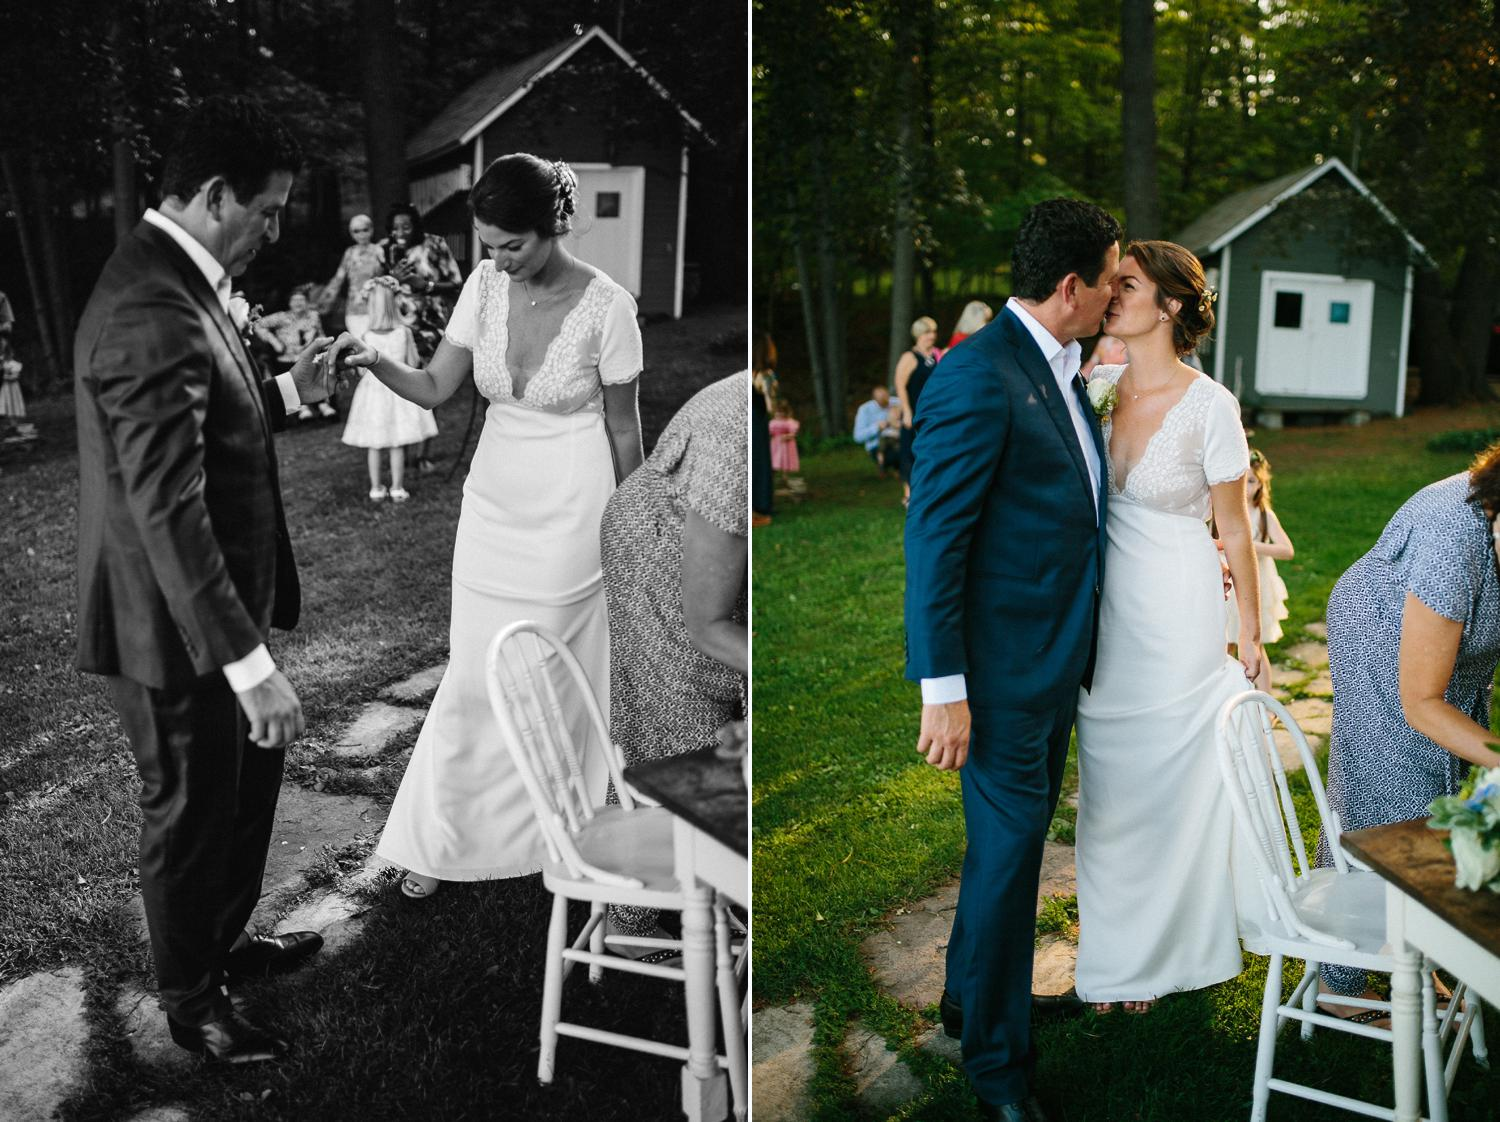 otty lake cottage wedding perth ontario-089.jpg